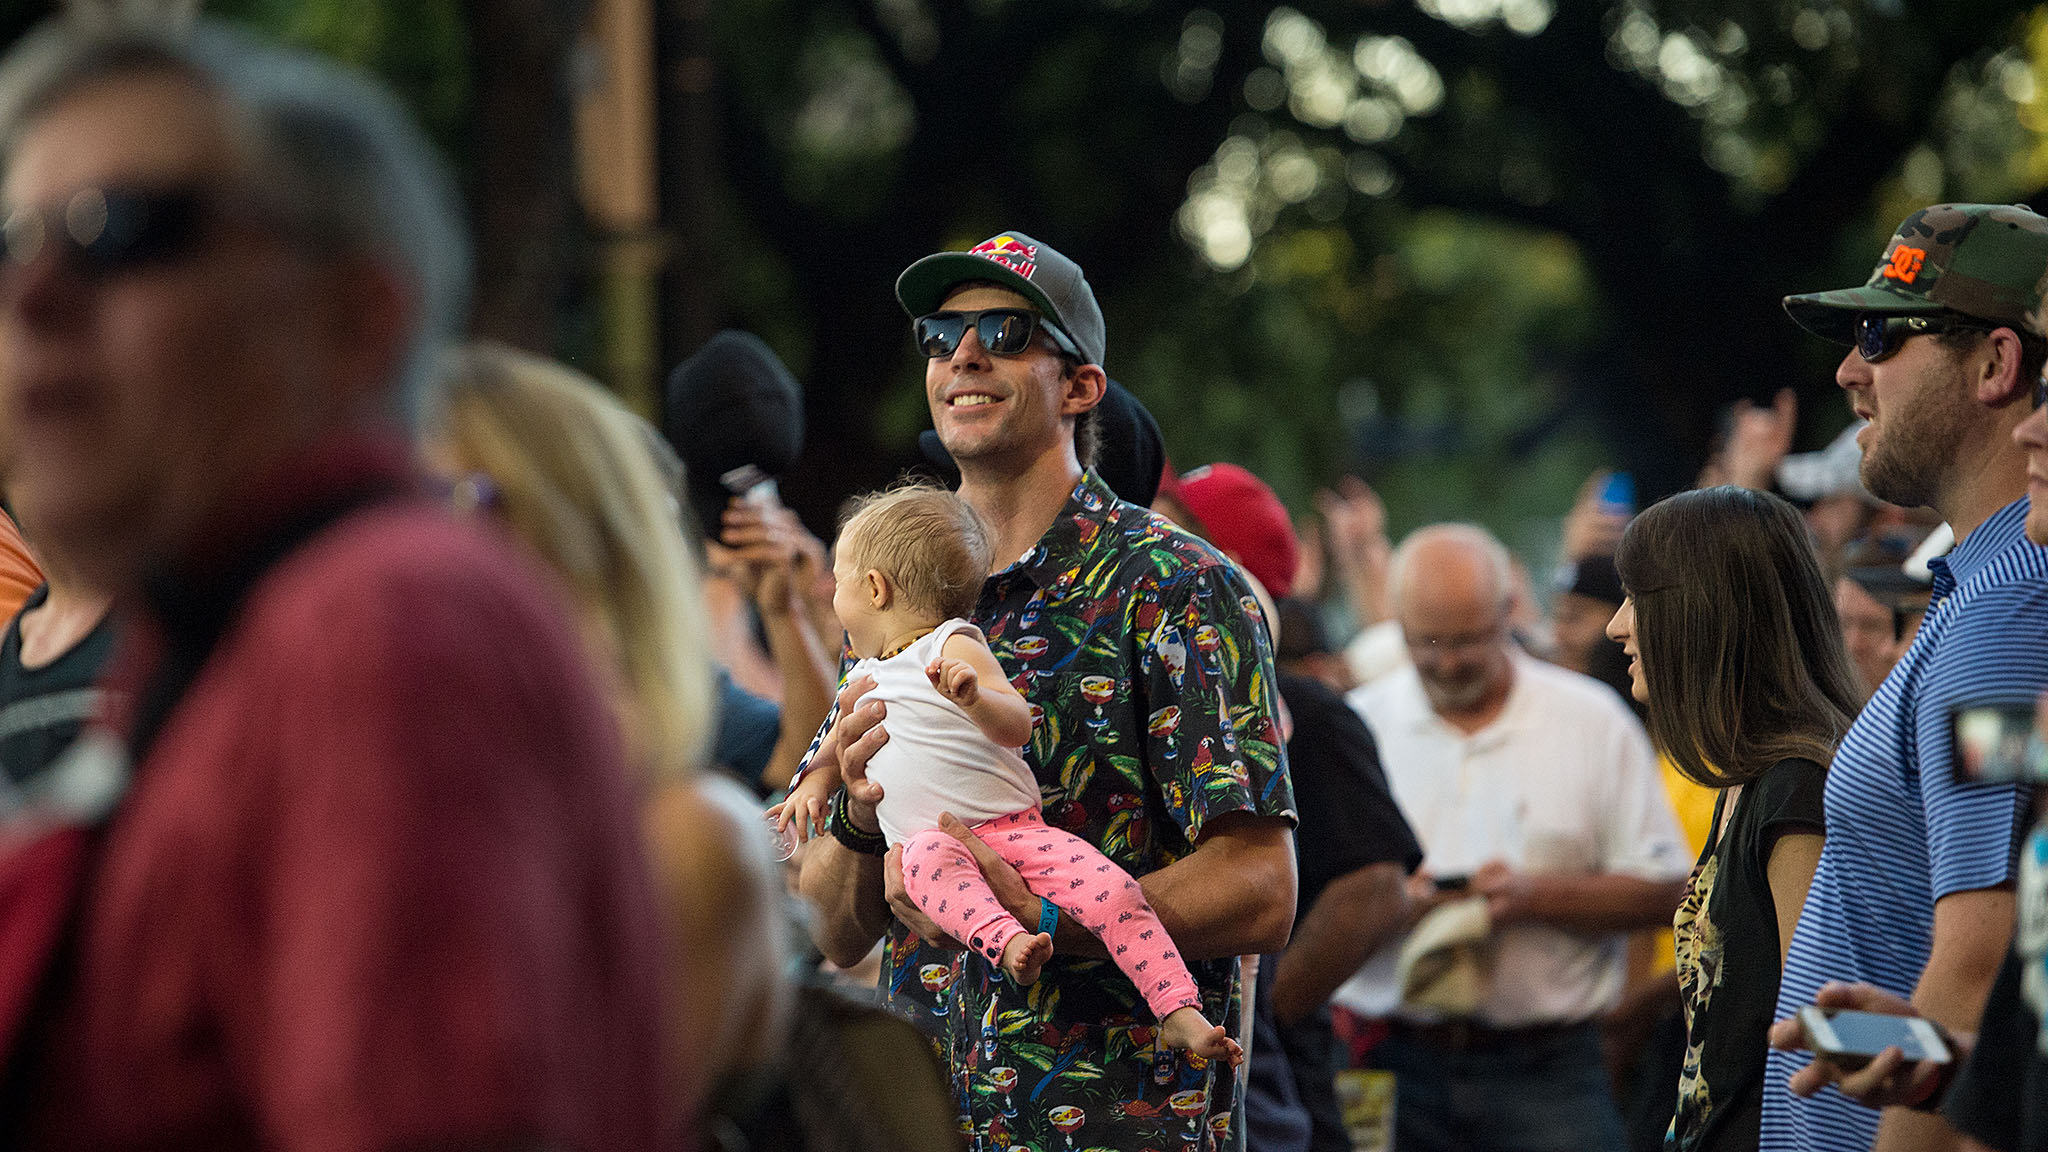 Travis Pastrana, who will compete in RallyCross on Saturday, watched the BMX Vert finals at the Texas State Capitol along with his daughter, Addy, and his wife, pro skateboarder Lyn-Z Adams Hawkins Pastrana.